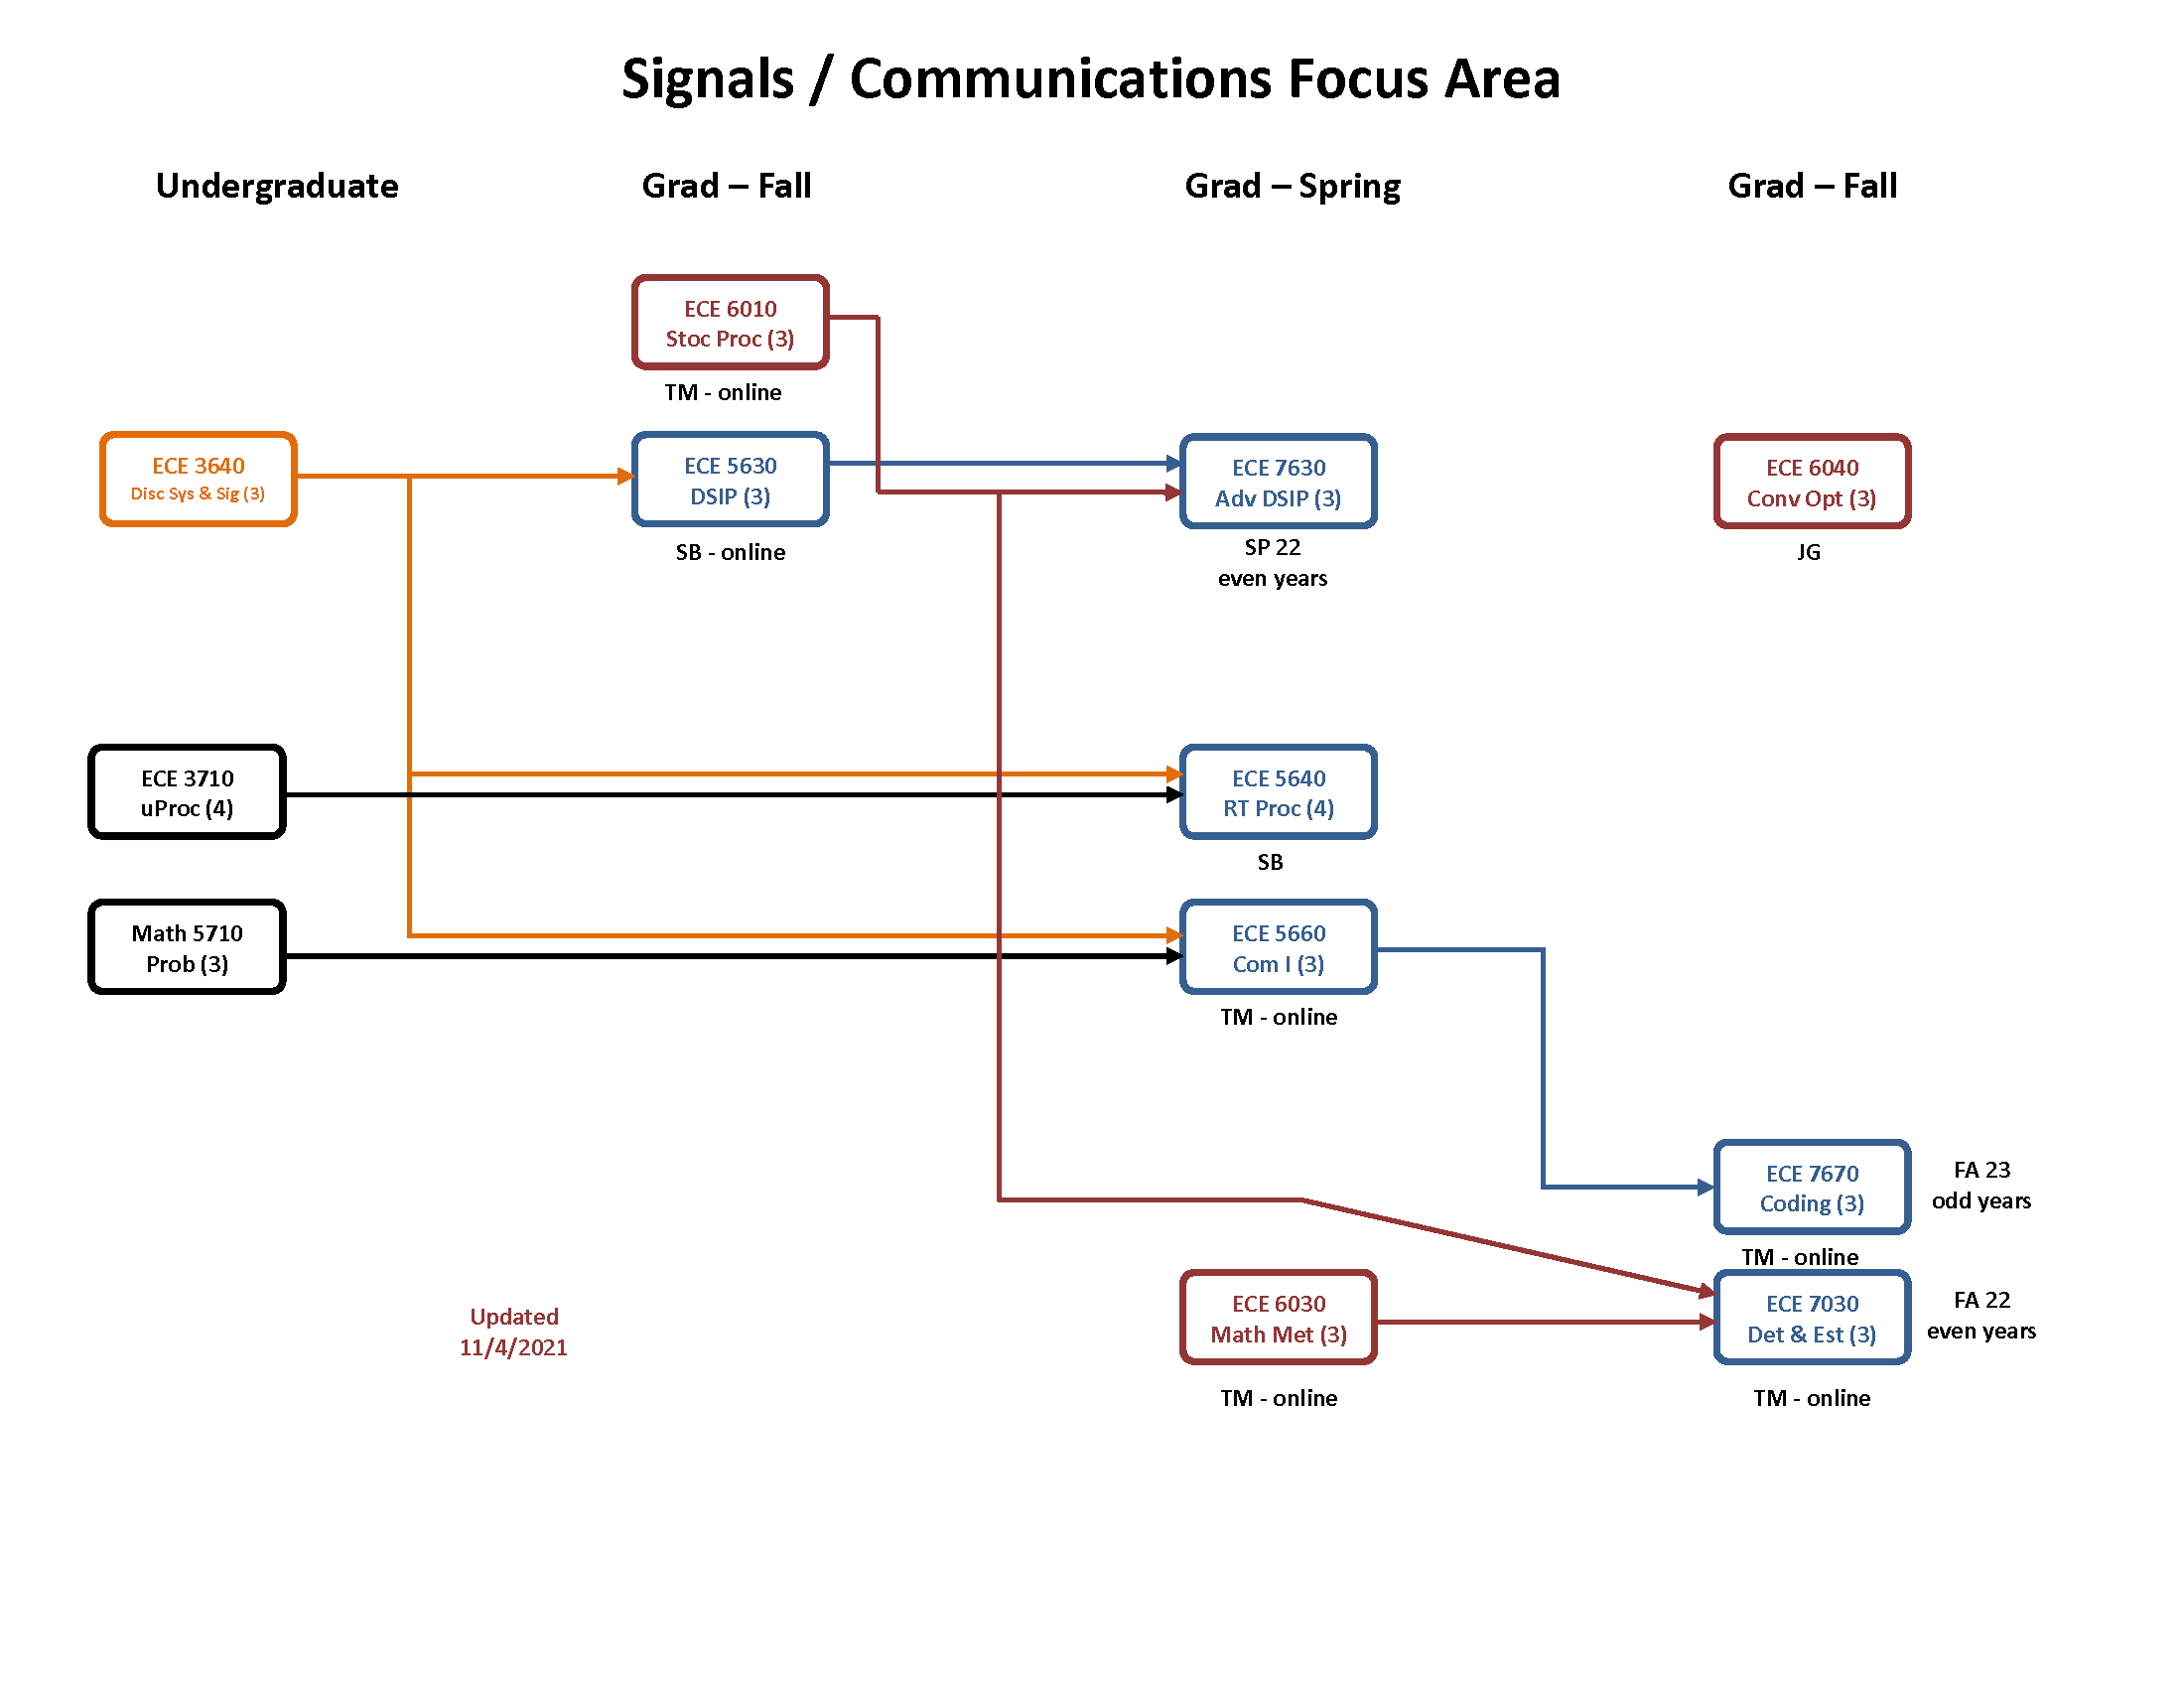 Signals / Communication Focus Area